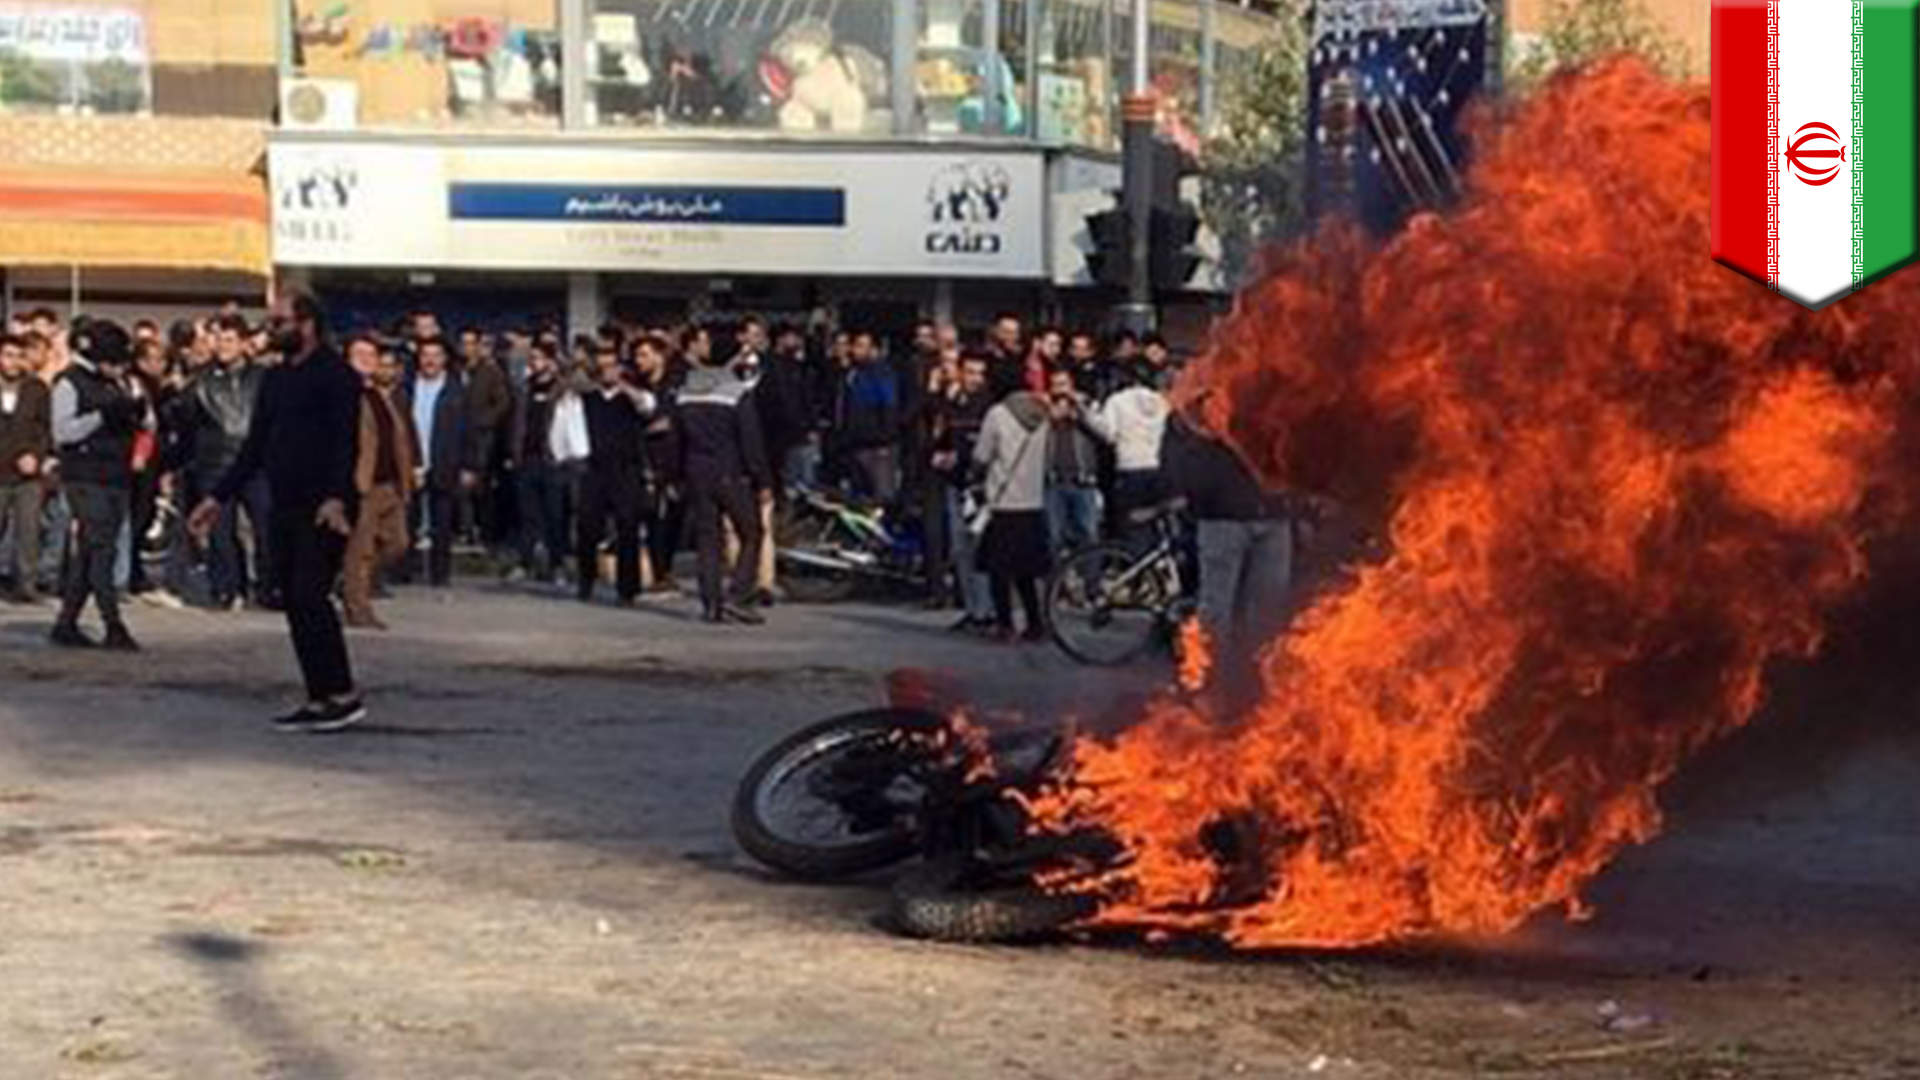 Iran blocks internet access amid mass protests over gasoline prices